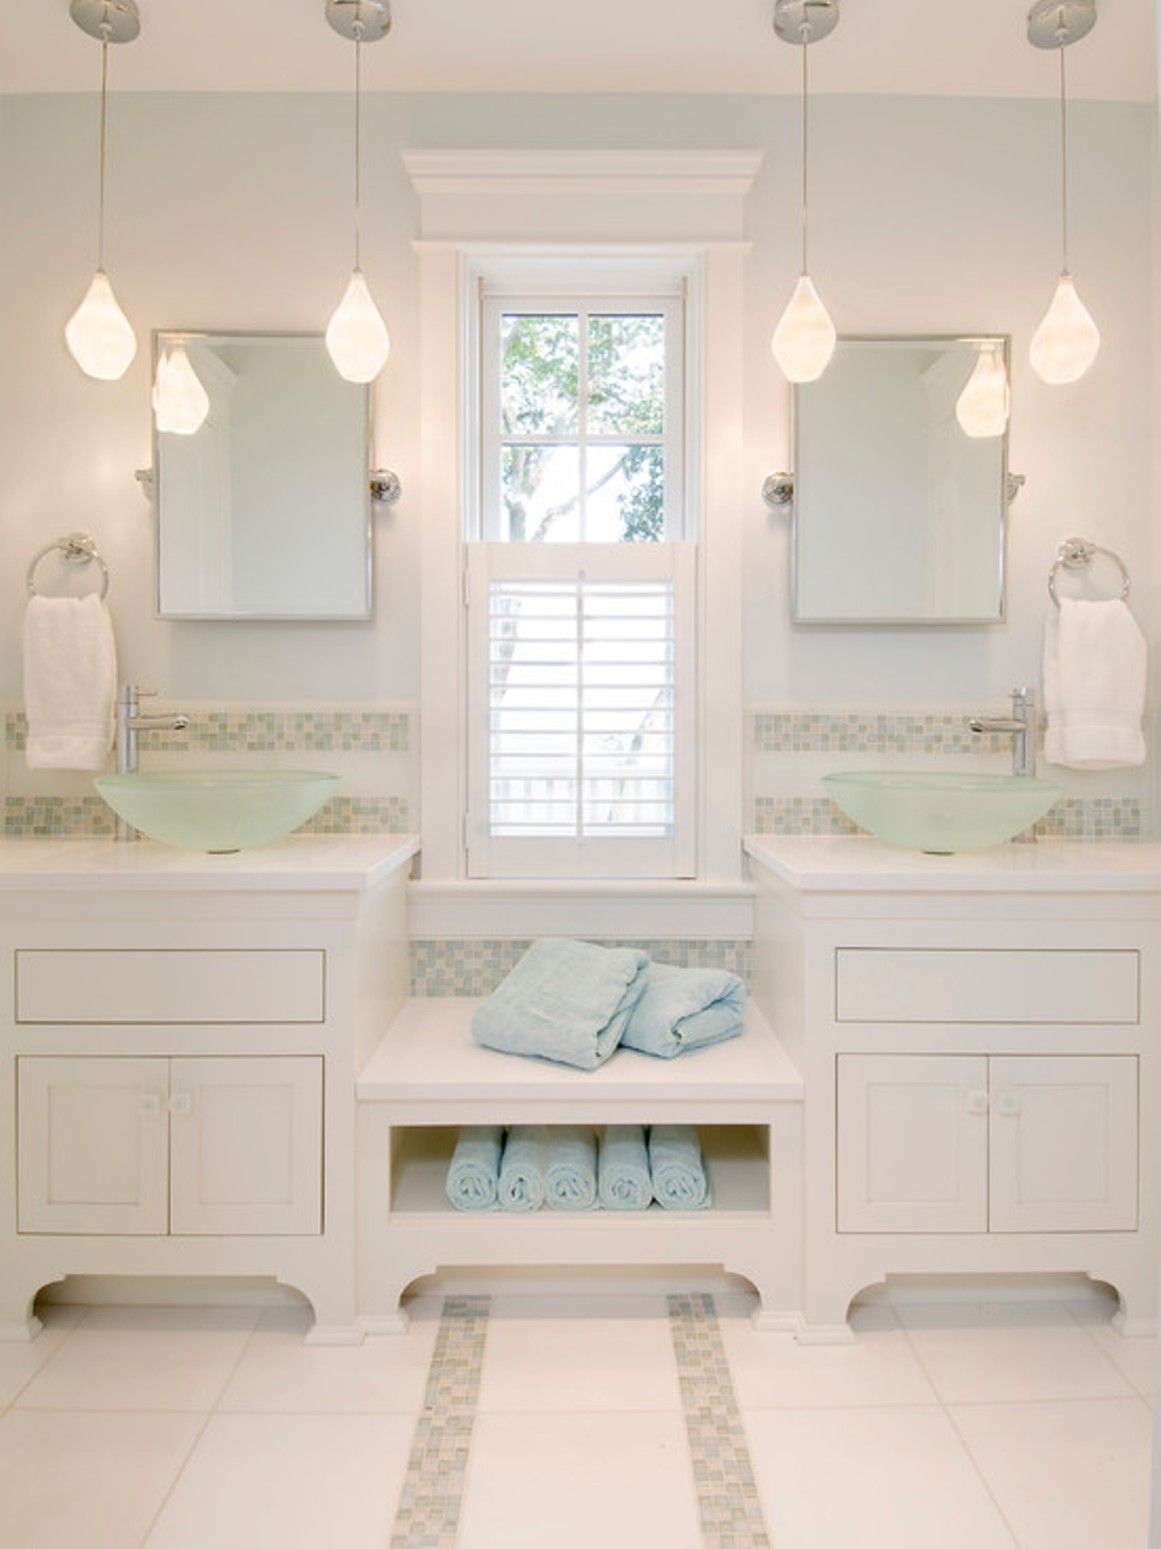 Bathroom Vanity Lighting Placement best pendant lighting bathroom vanity for awesome nuance : white